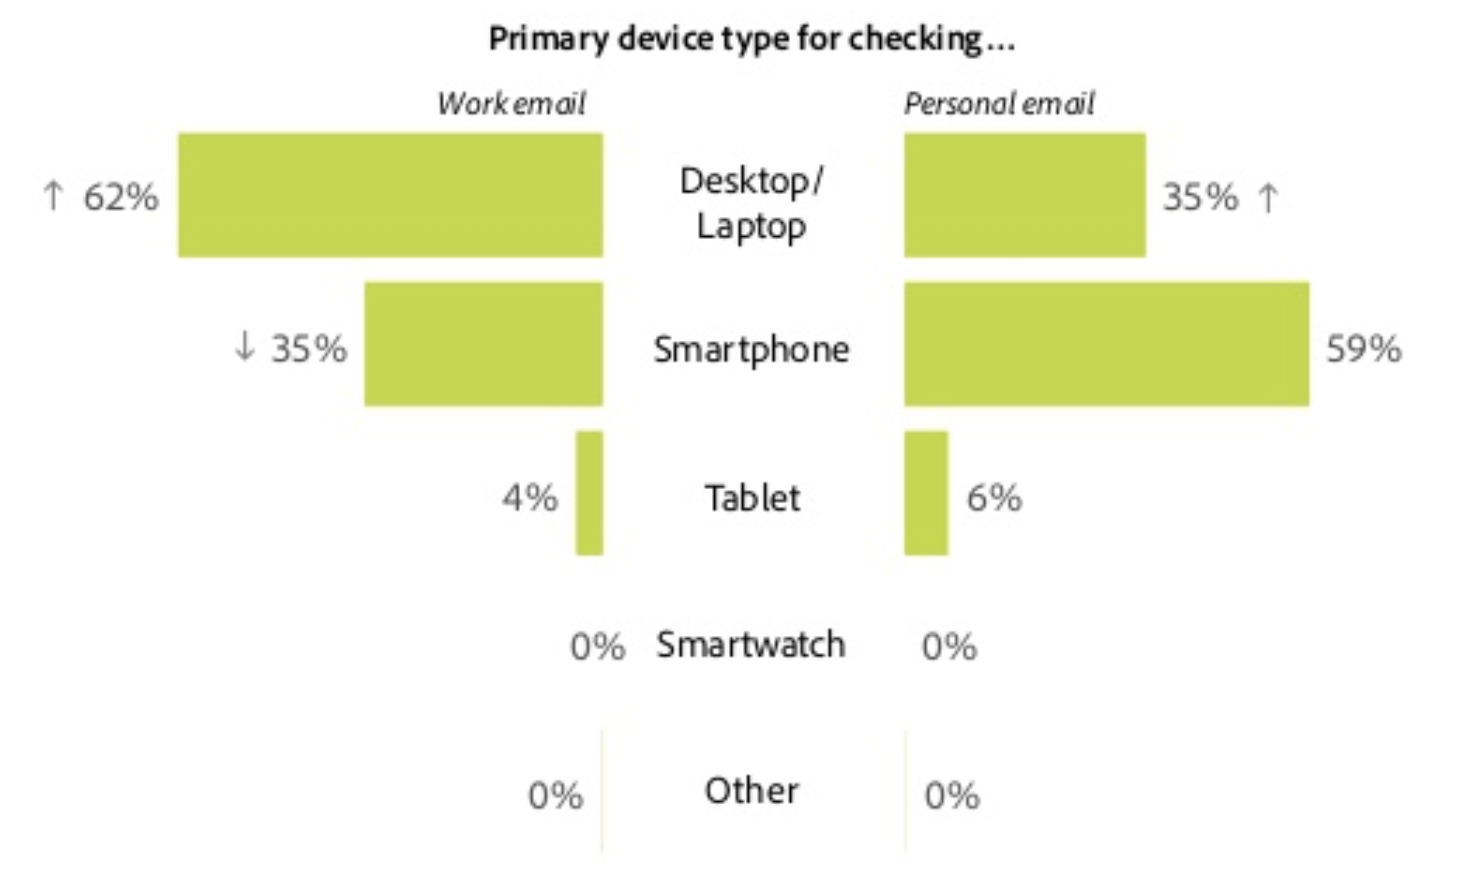 devices used for checking work and personal email